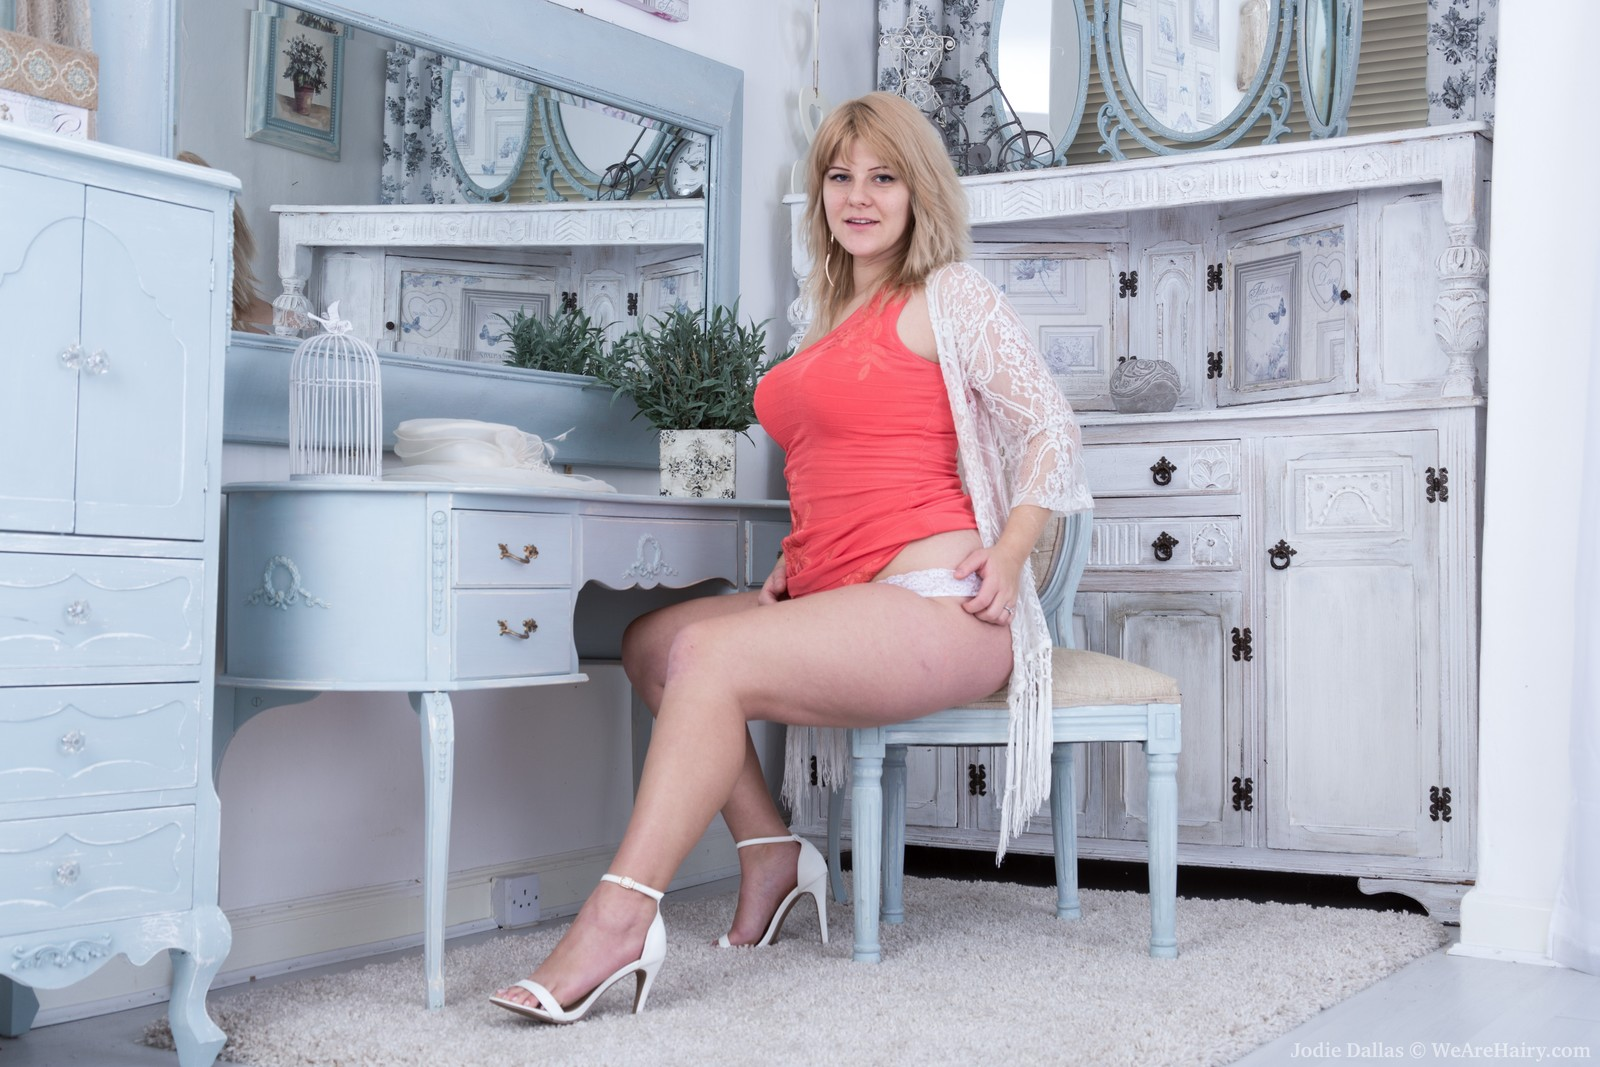 Chubby blonde Jodie Dallas | The Hairy Lady Blog